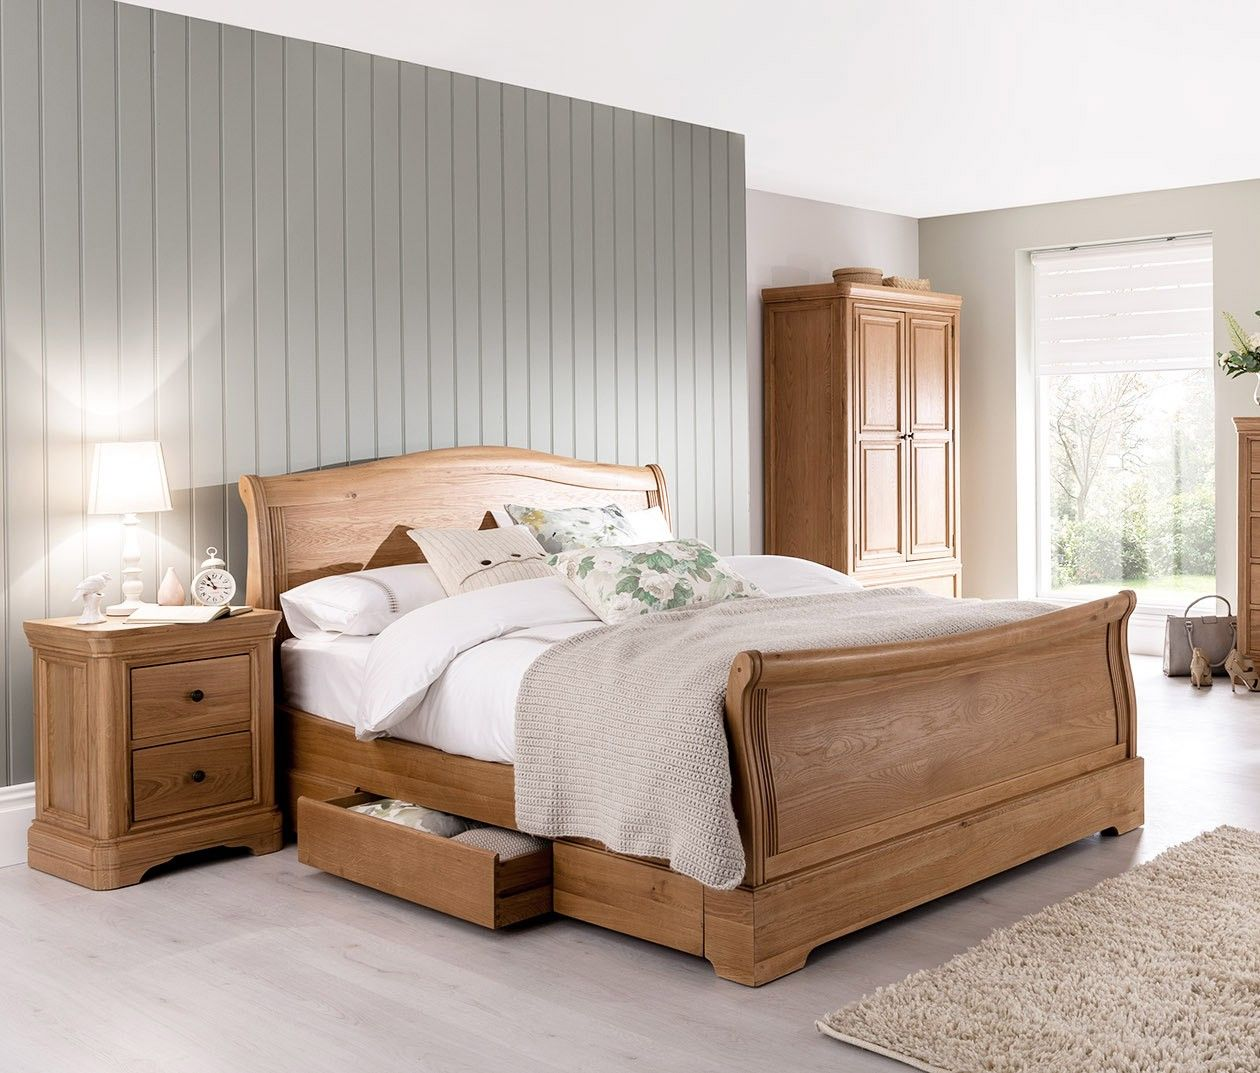 Carmen Solid Oak Sleigh Beds in 3 Sizes